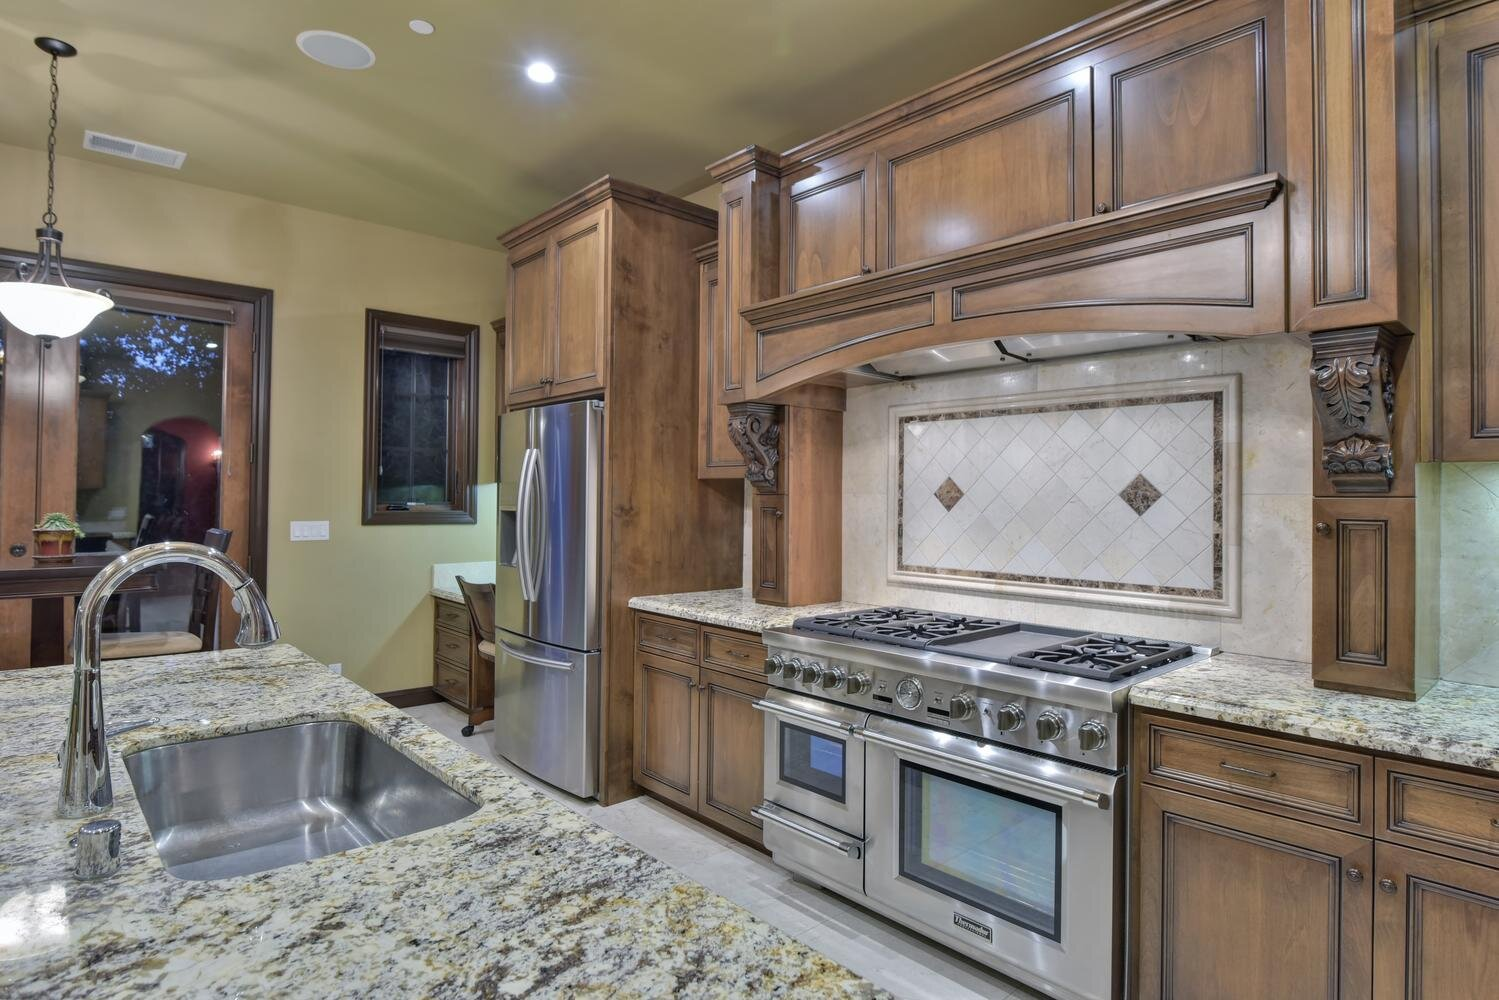 16021 Winterbrook Rd Los Gatos-large-019-030-Kitchen Sink and Stove View-1499x1000-72dpi.jpg